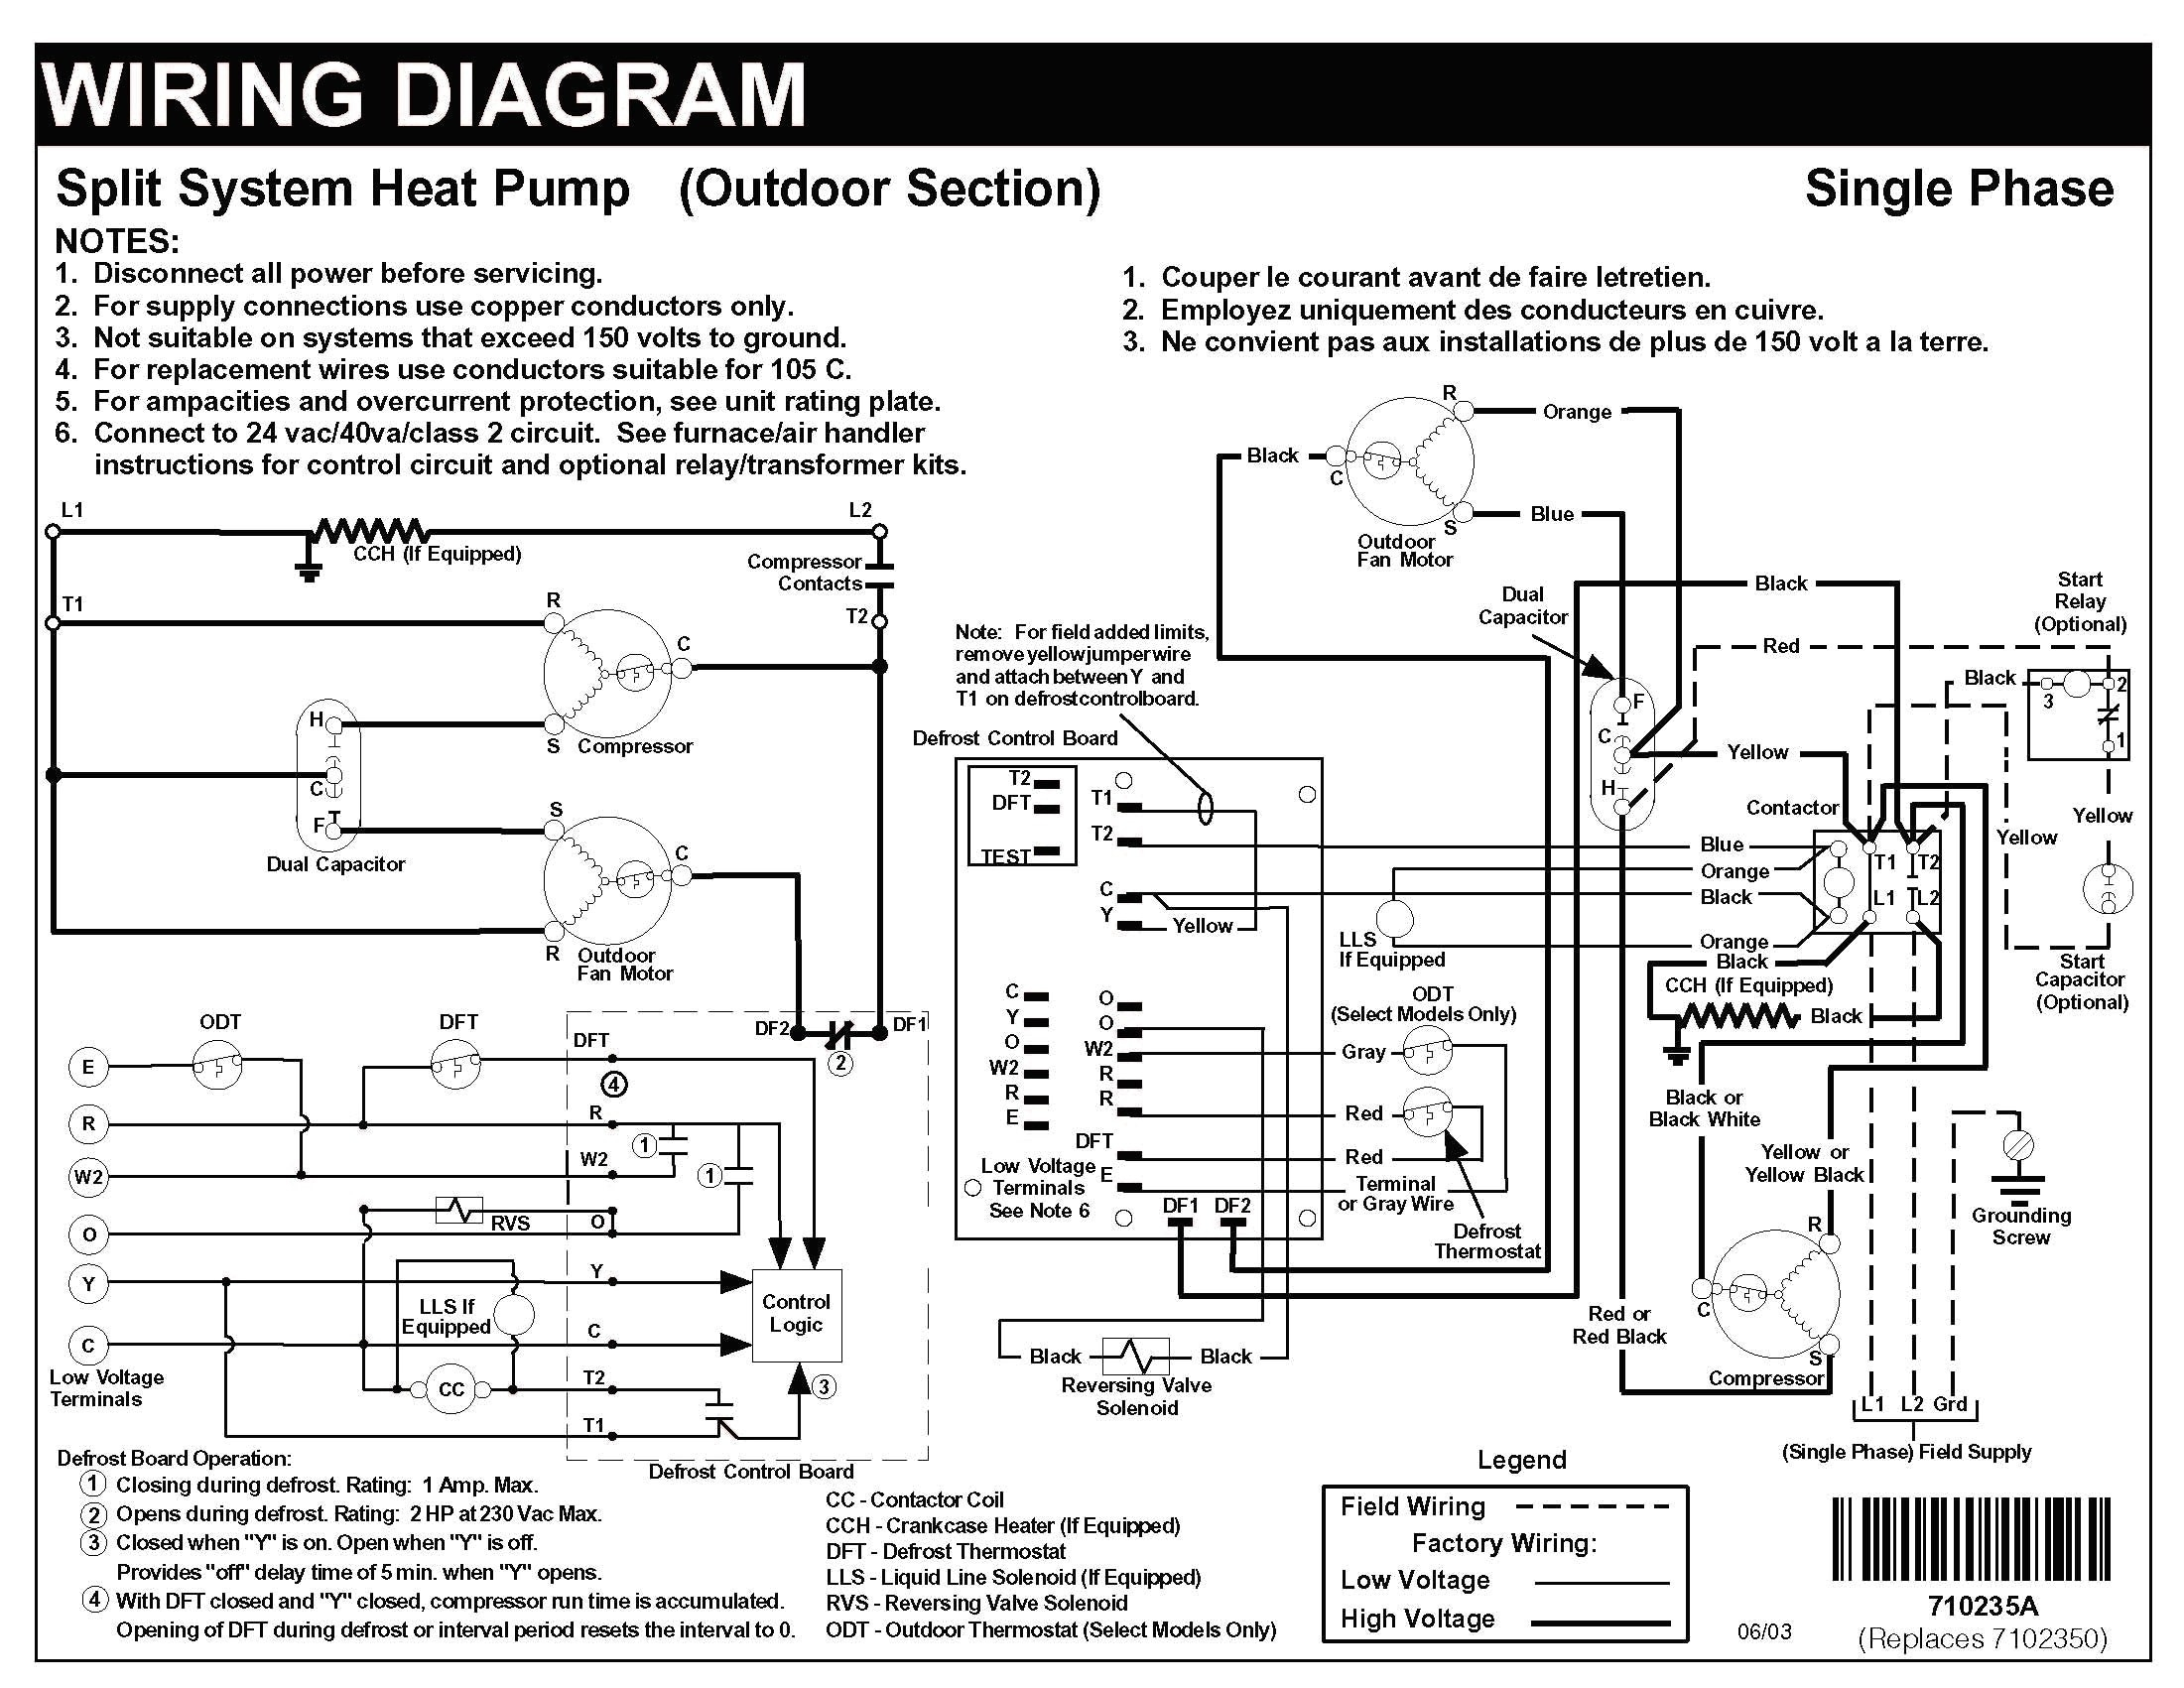 carrier digital thermostat wiring diagram carrier heating thermostat wiring diagram free download